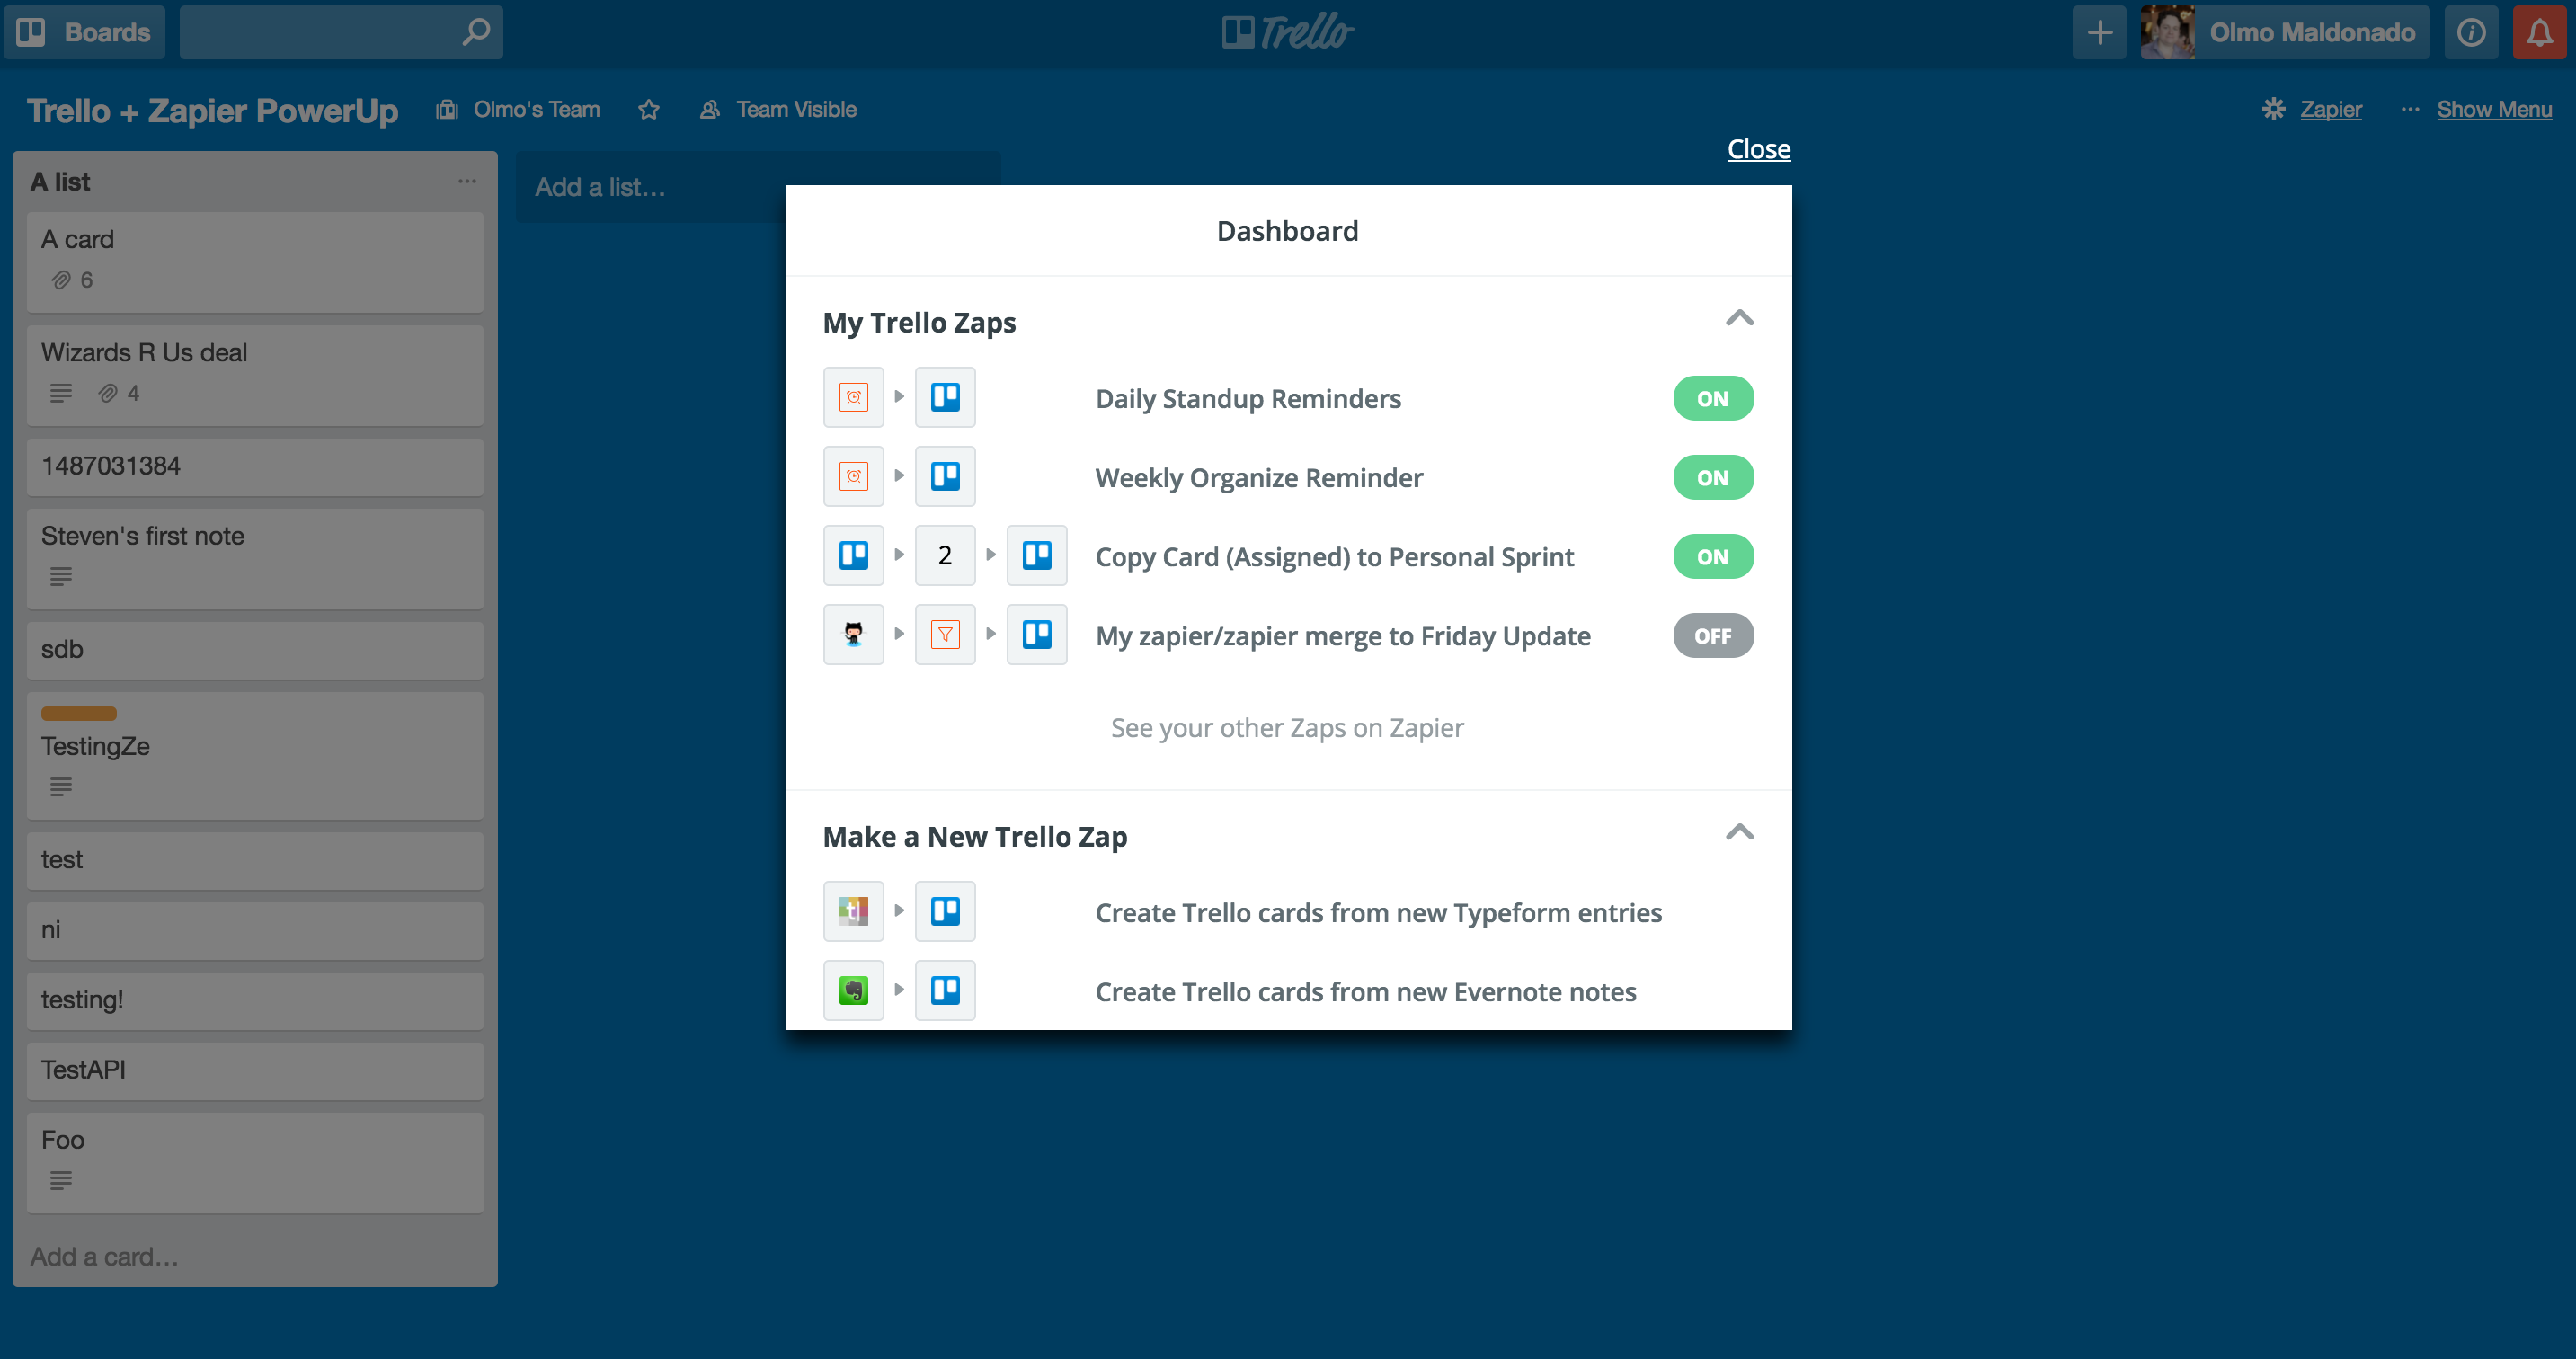 Trello PowerUp shows Zapier Zaps